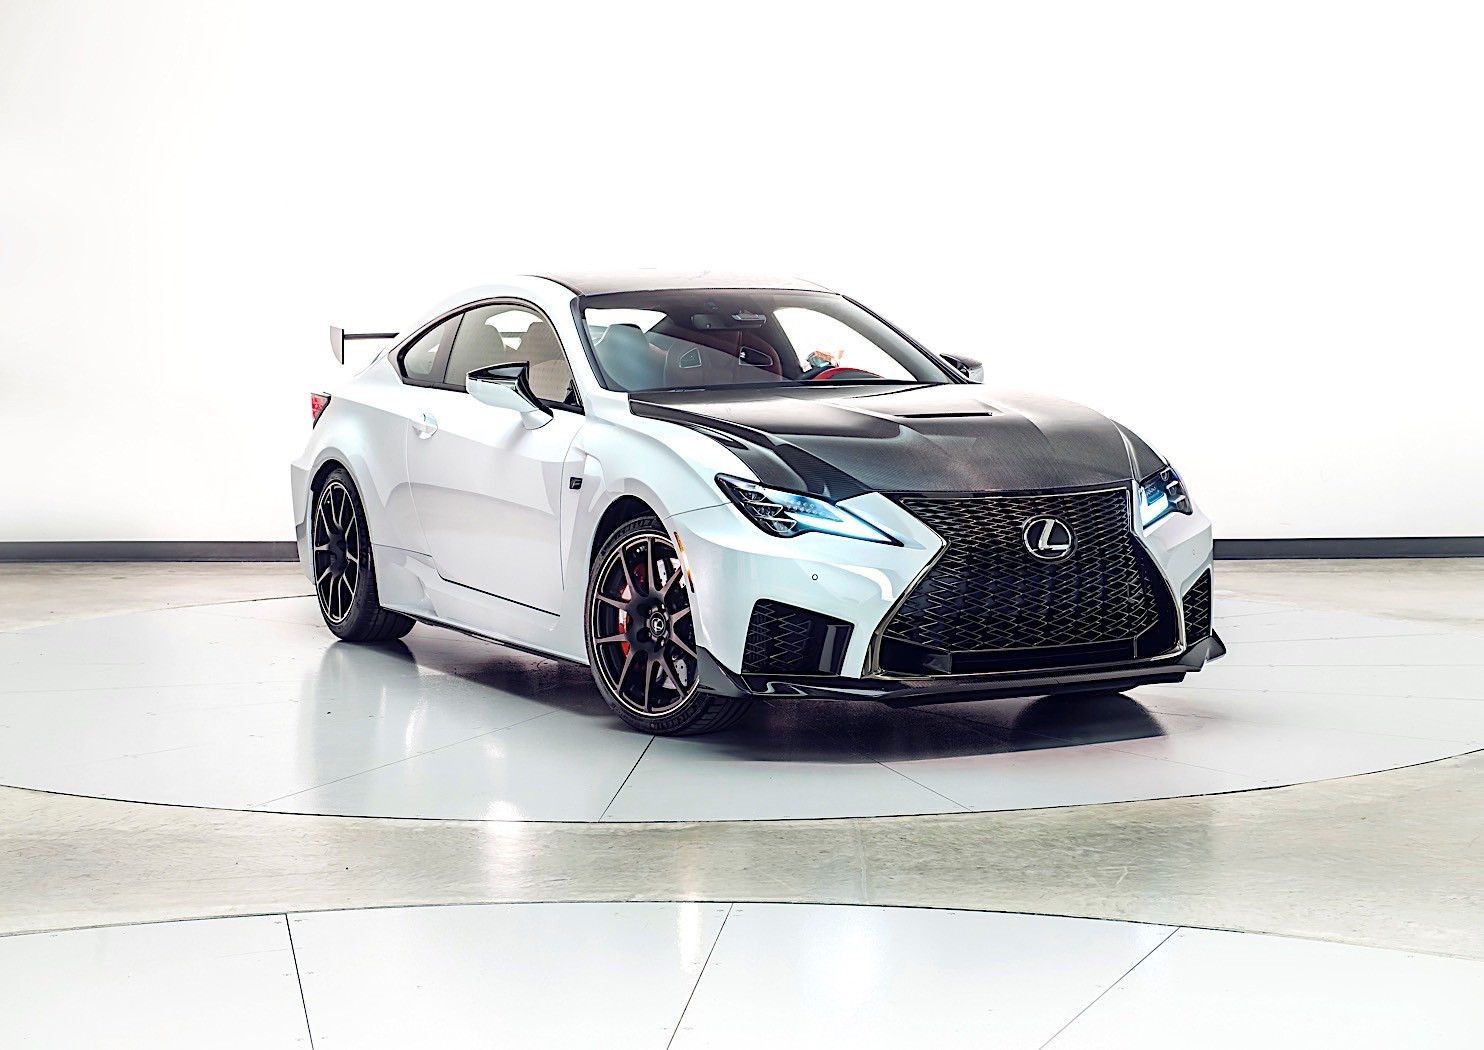 2020 Lexus Rc F Readies For Detroit Auto Show Debut With